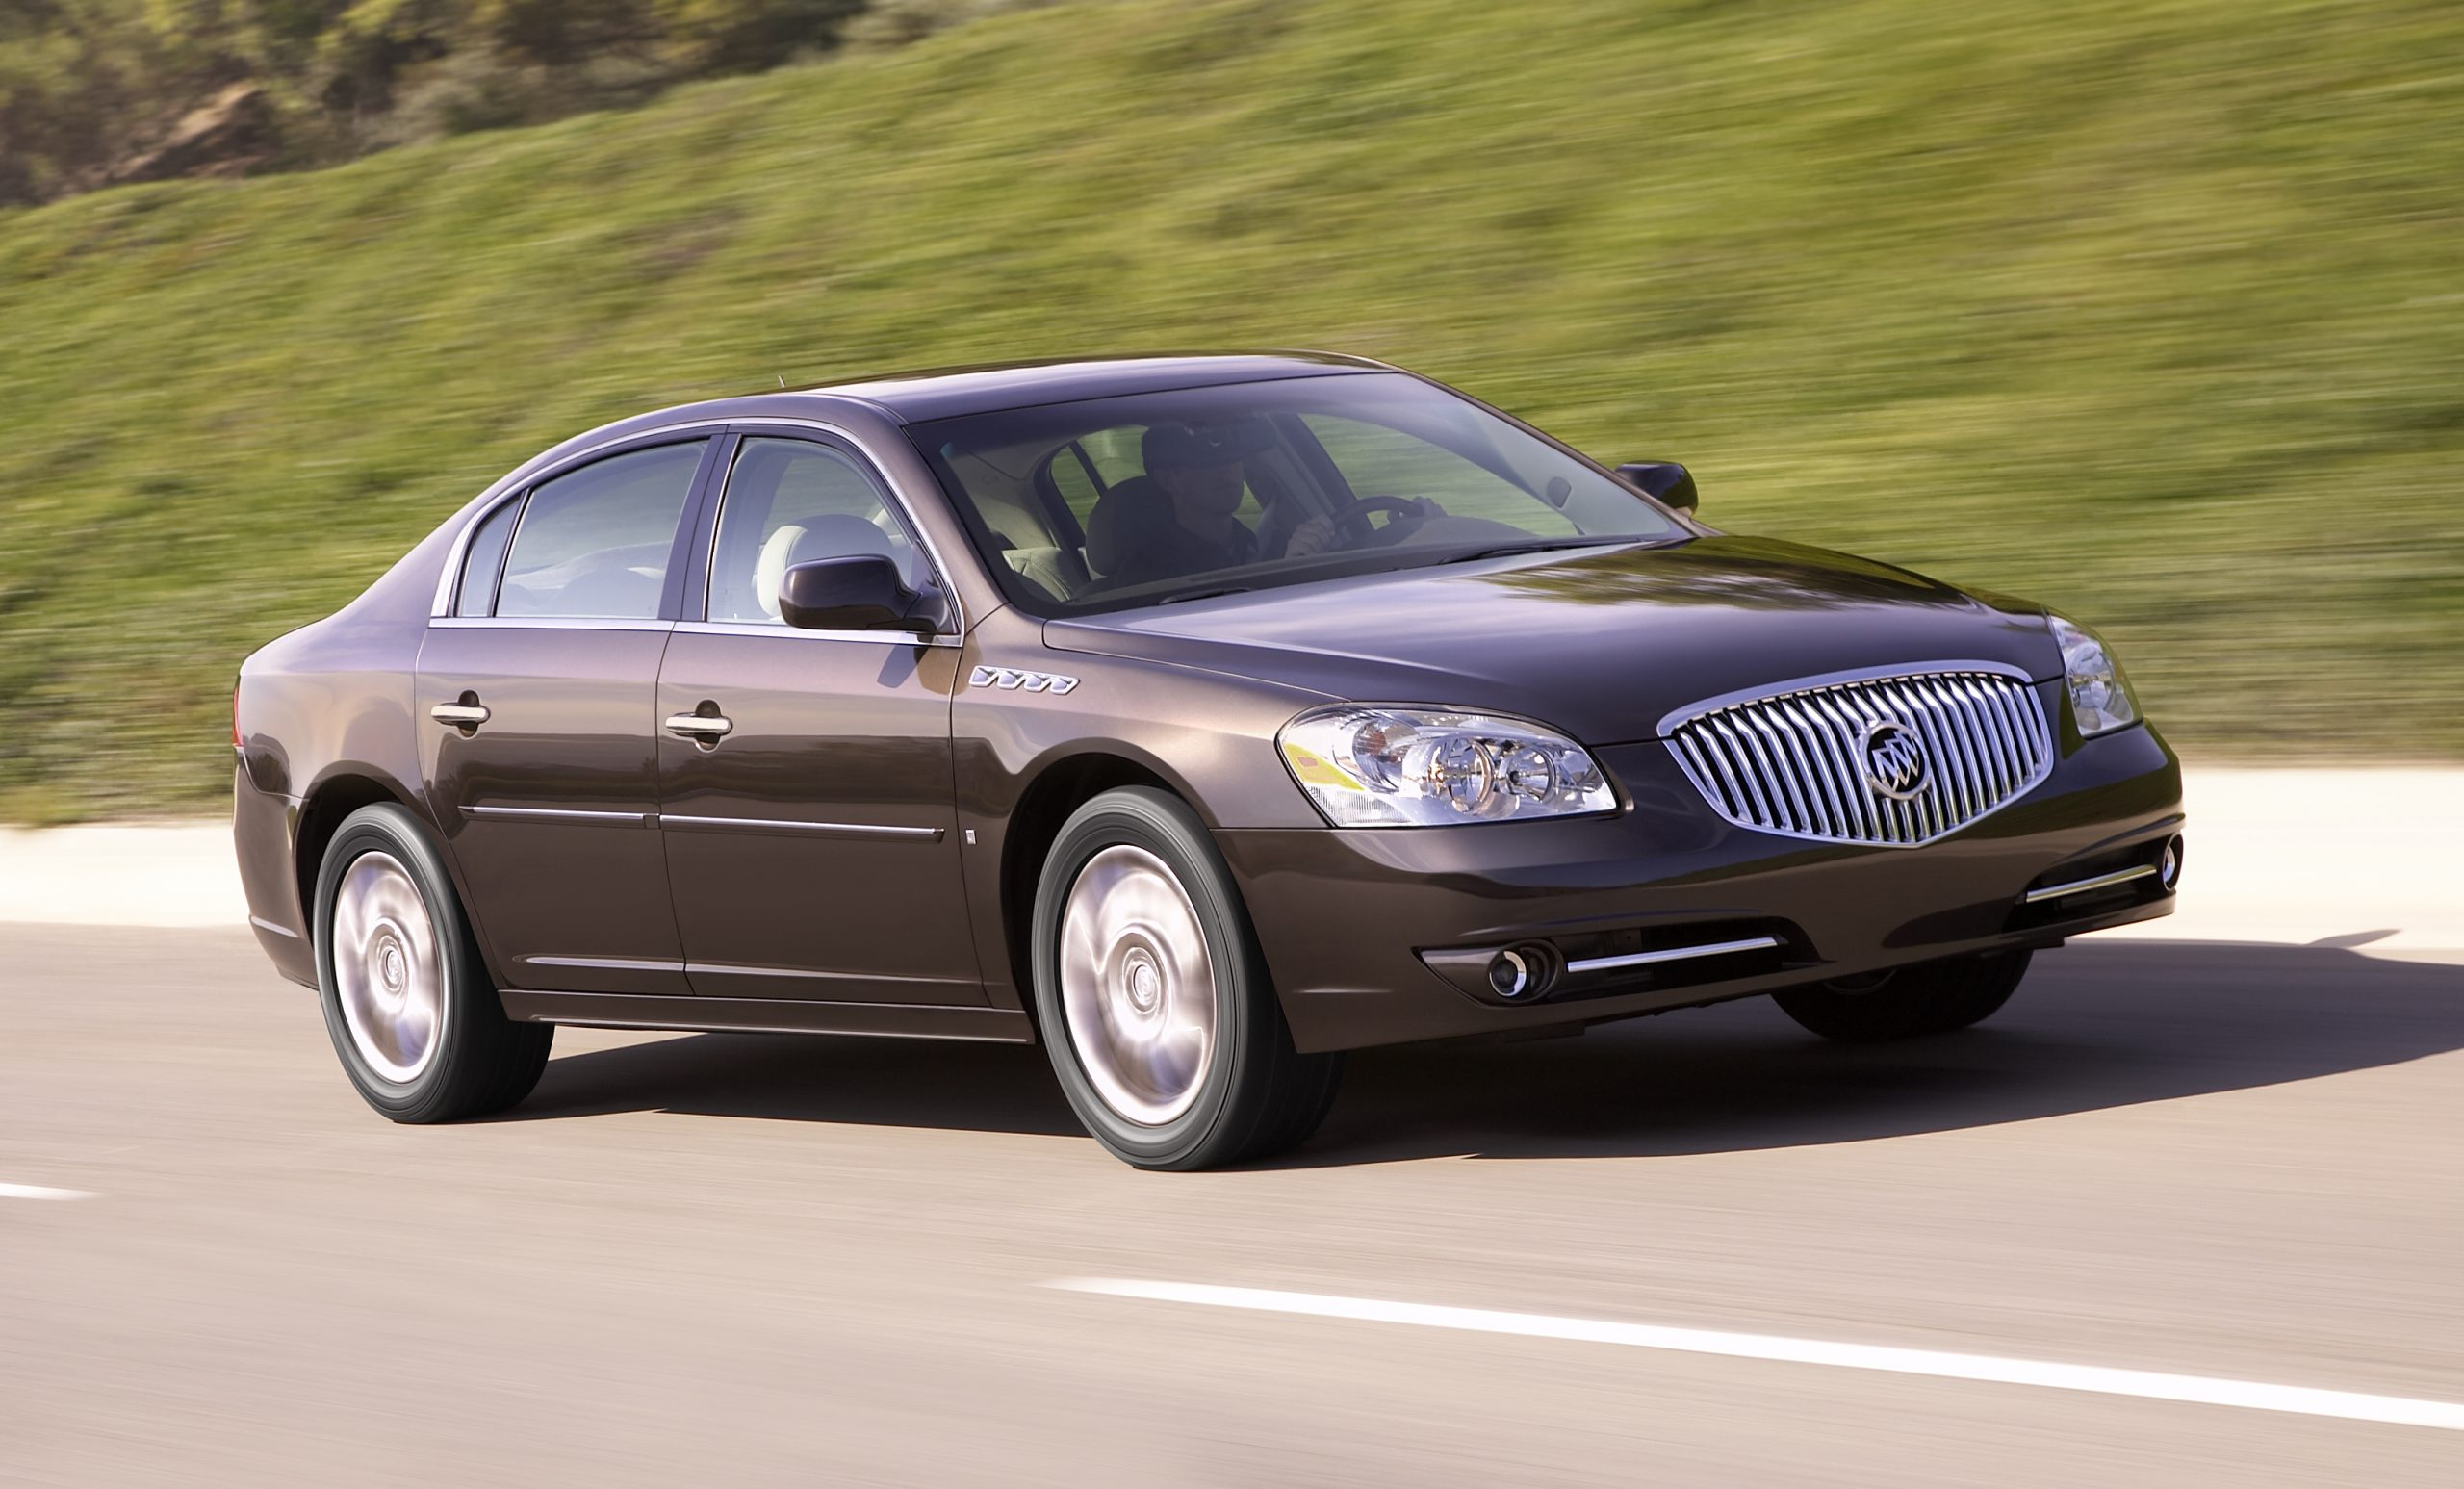 Are You Ready To Wave Goodbye To The Buick Lucerne? | Gm New 2022 Buick Lucerne Models, Manual, Issues